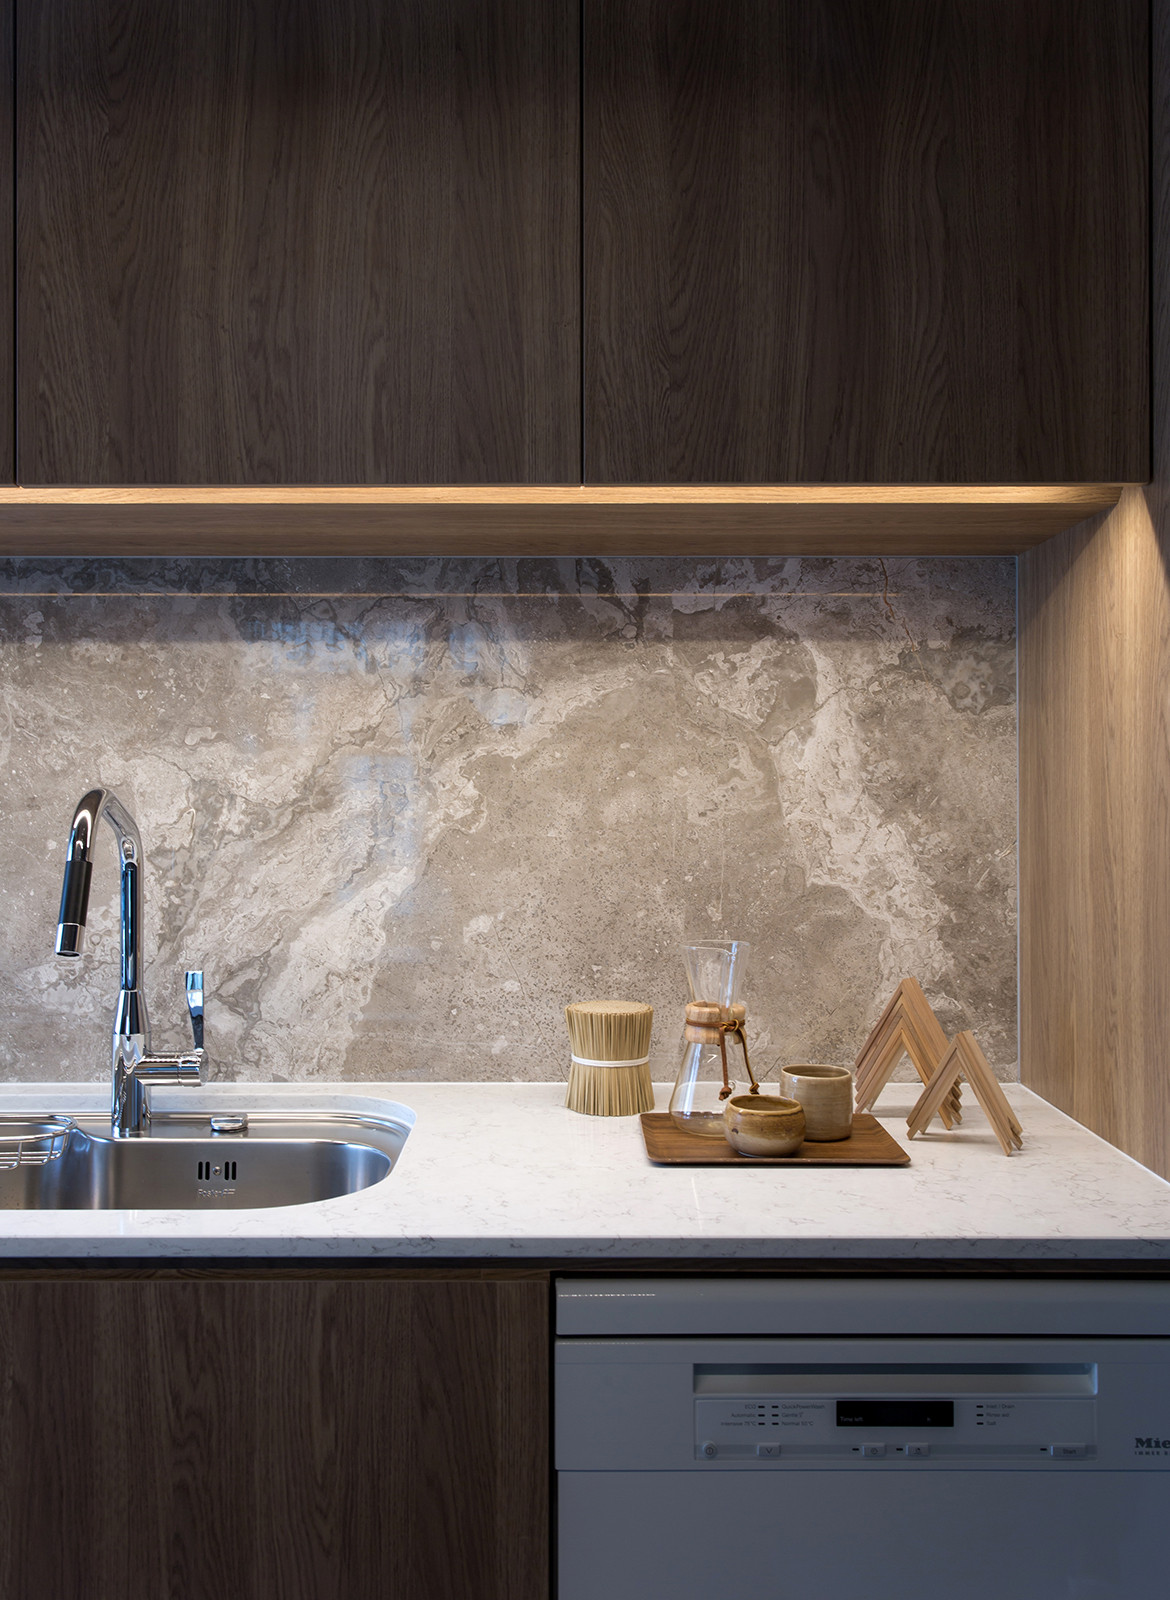 Taikoo Shing Apartment Studio Adjective kitchen splashback